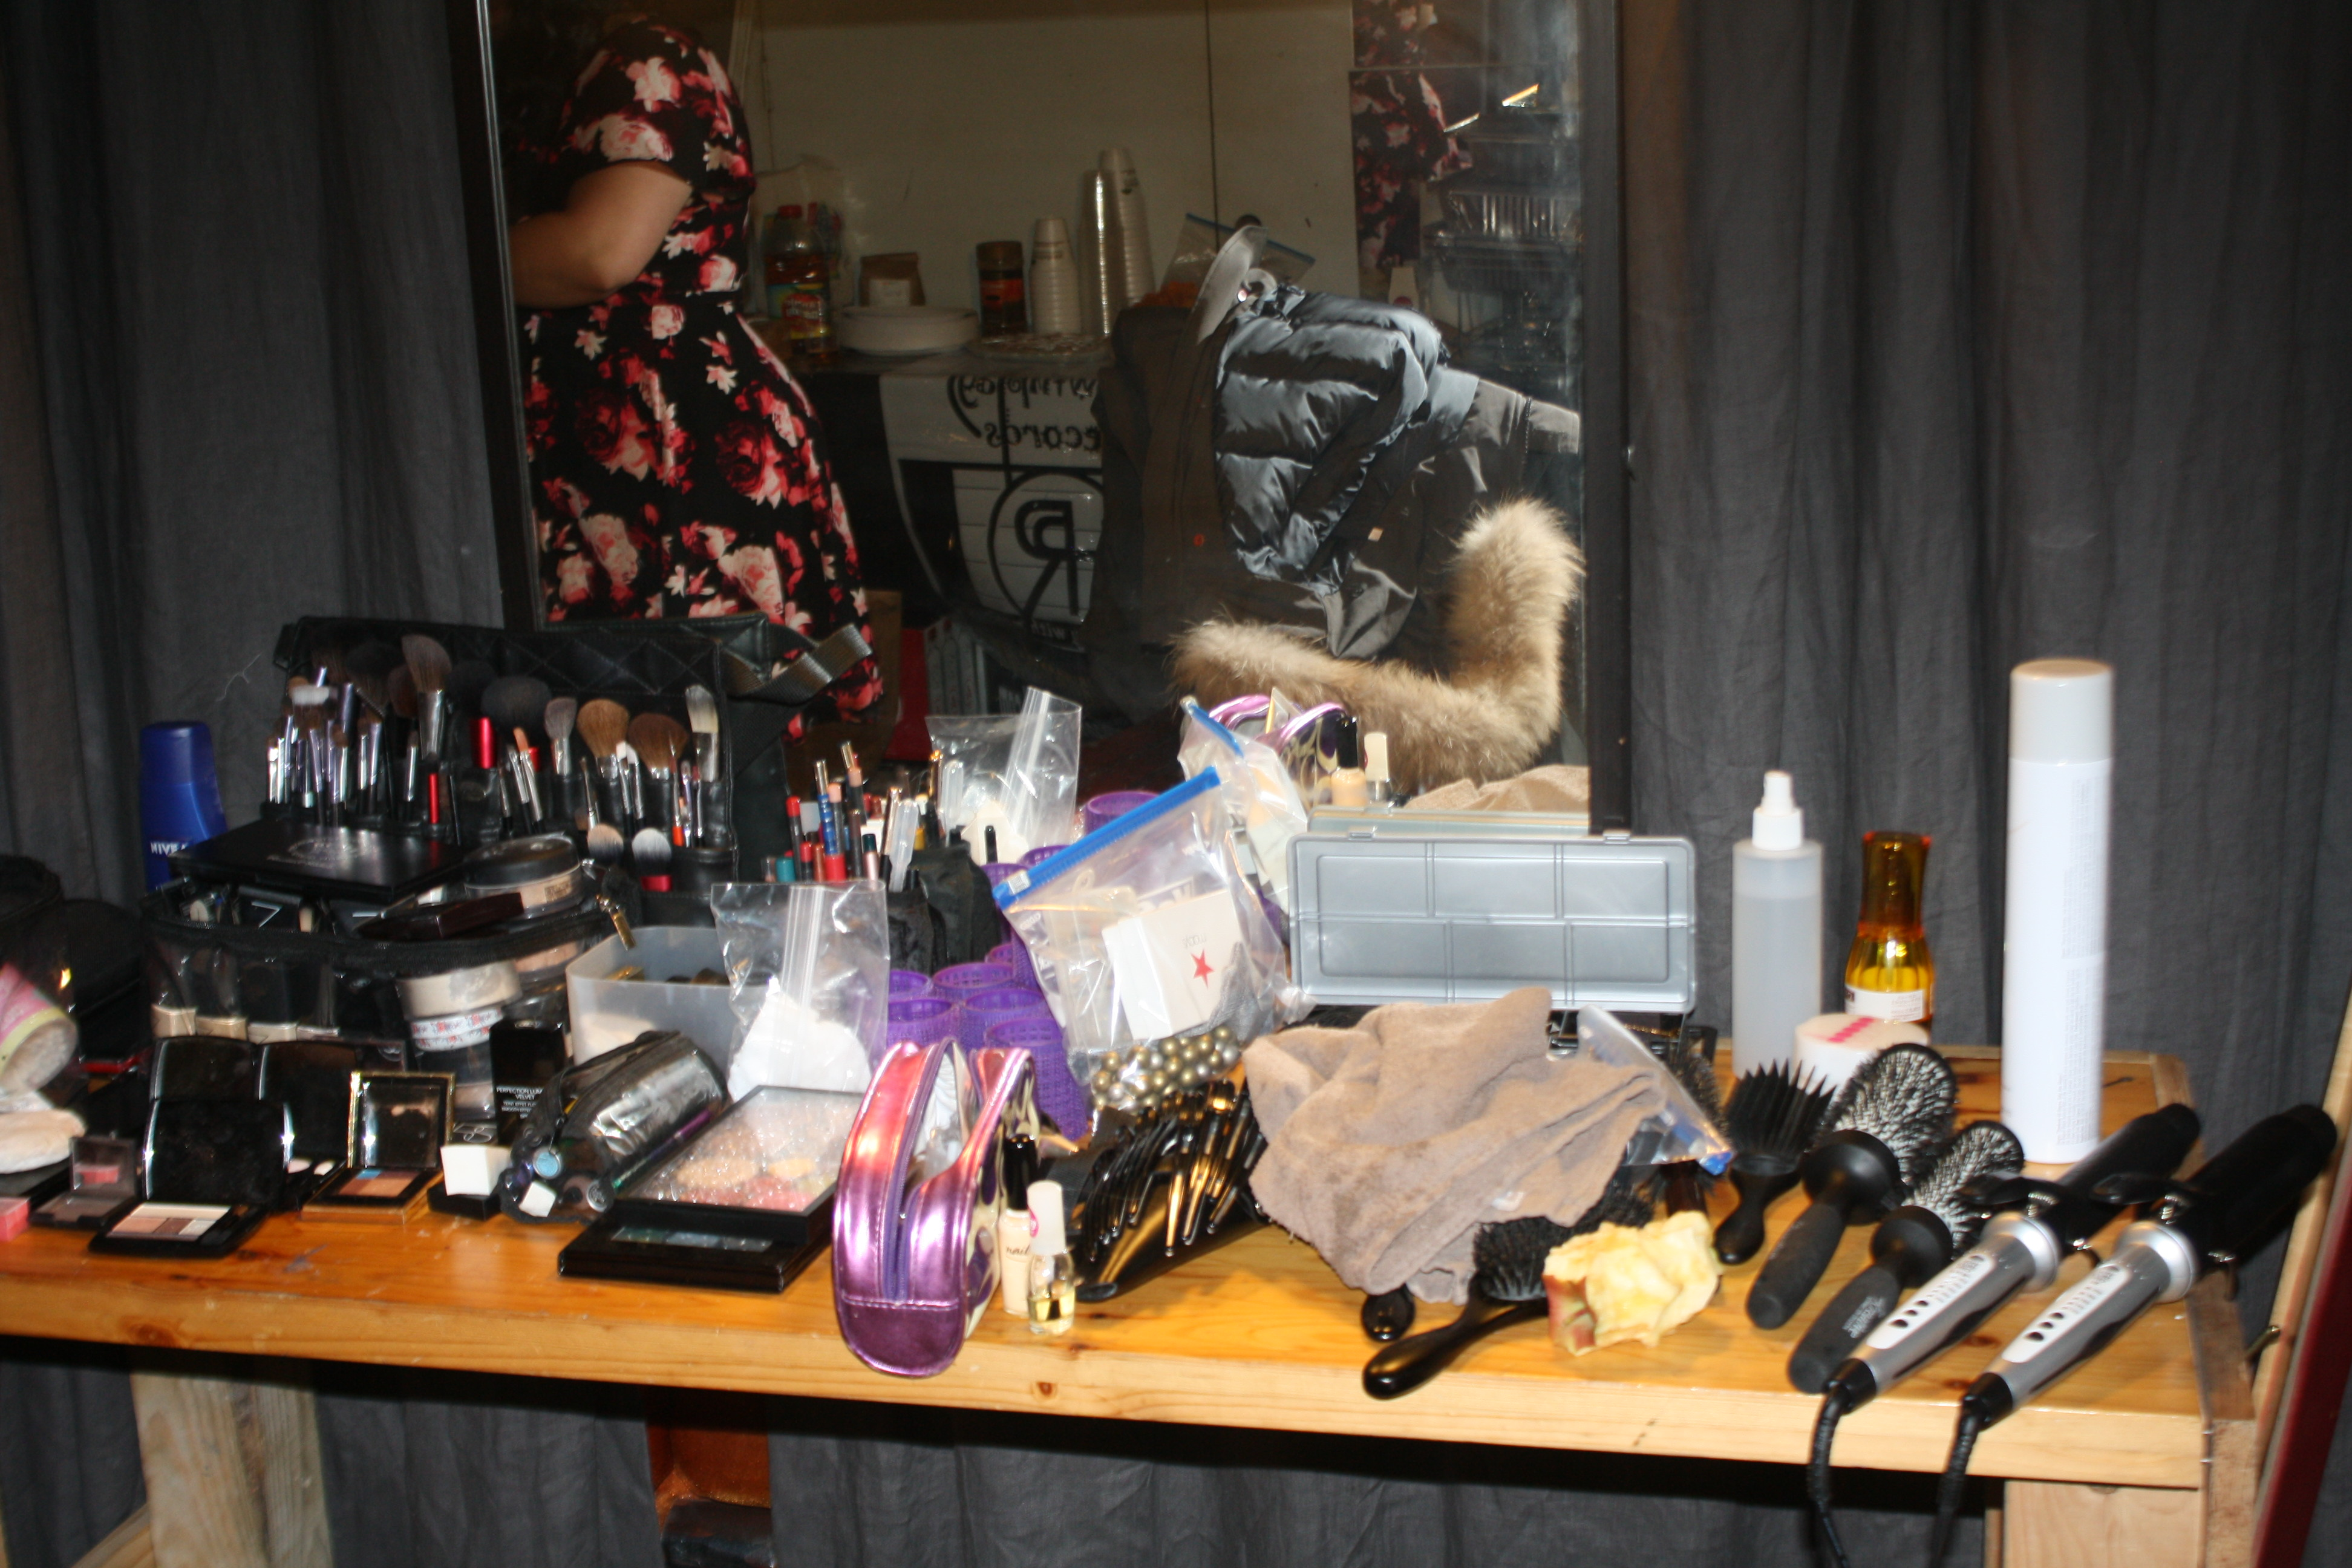 1 of 2 Makeup and hair stations